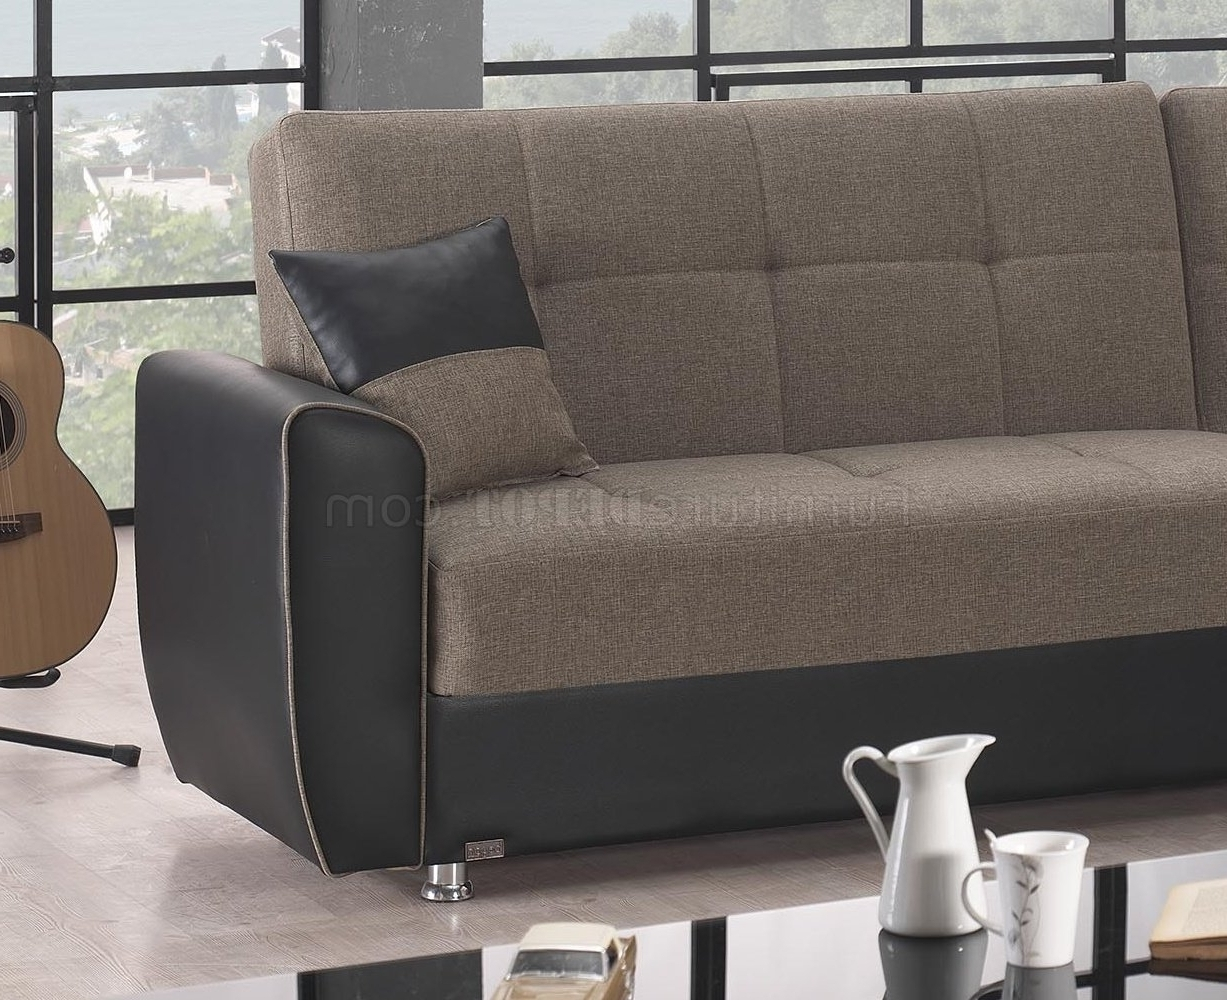 Maryland Sofas Throughout Newest Incredible Sectional Sofas Maryland – Mediasupload (View 6 of 20)